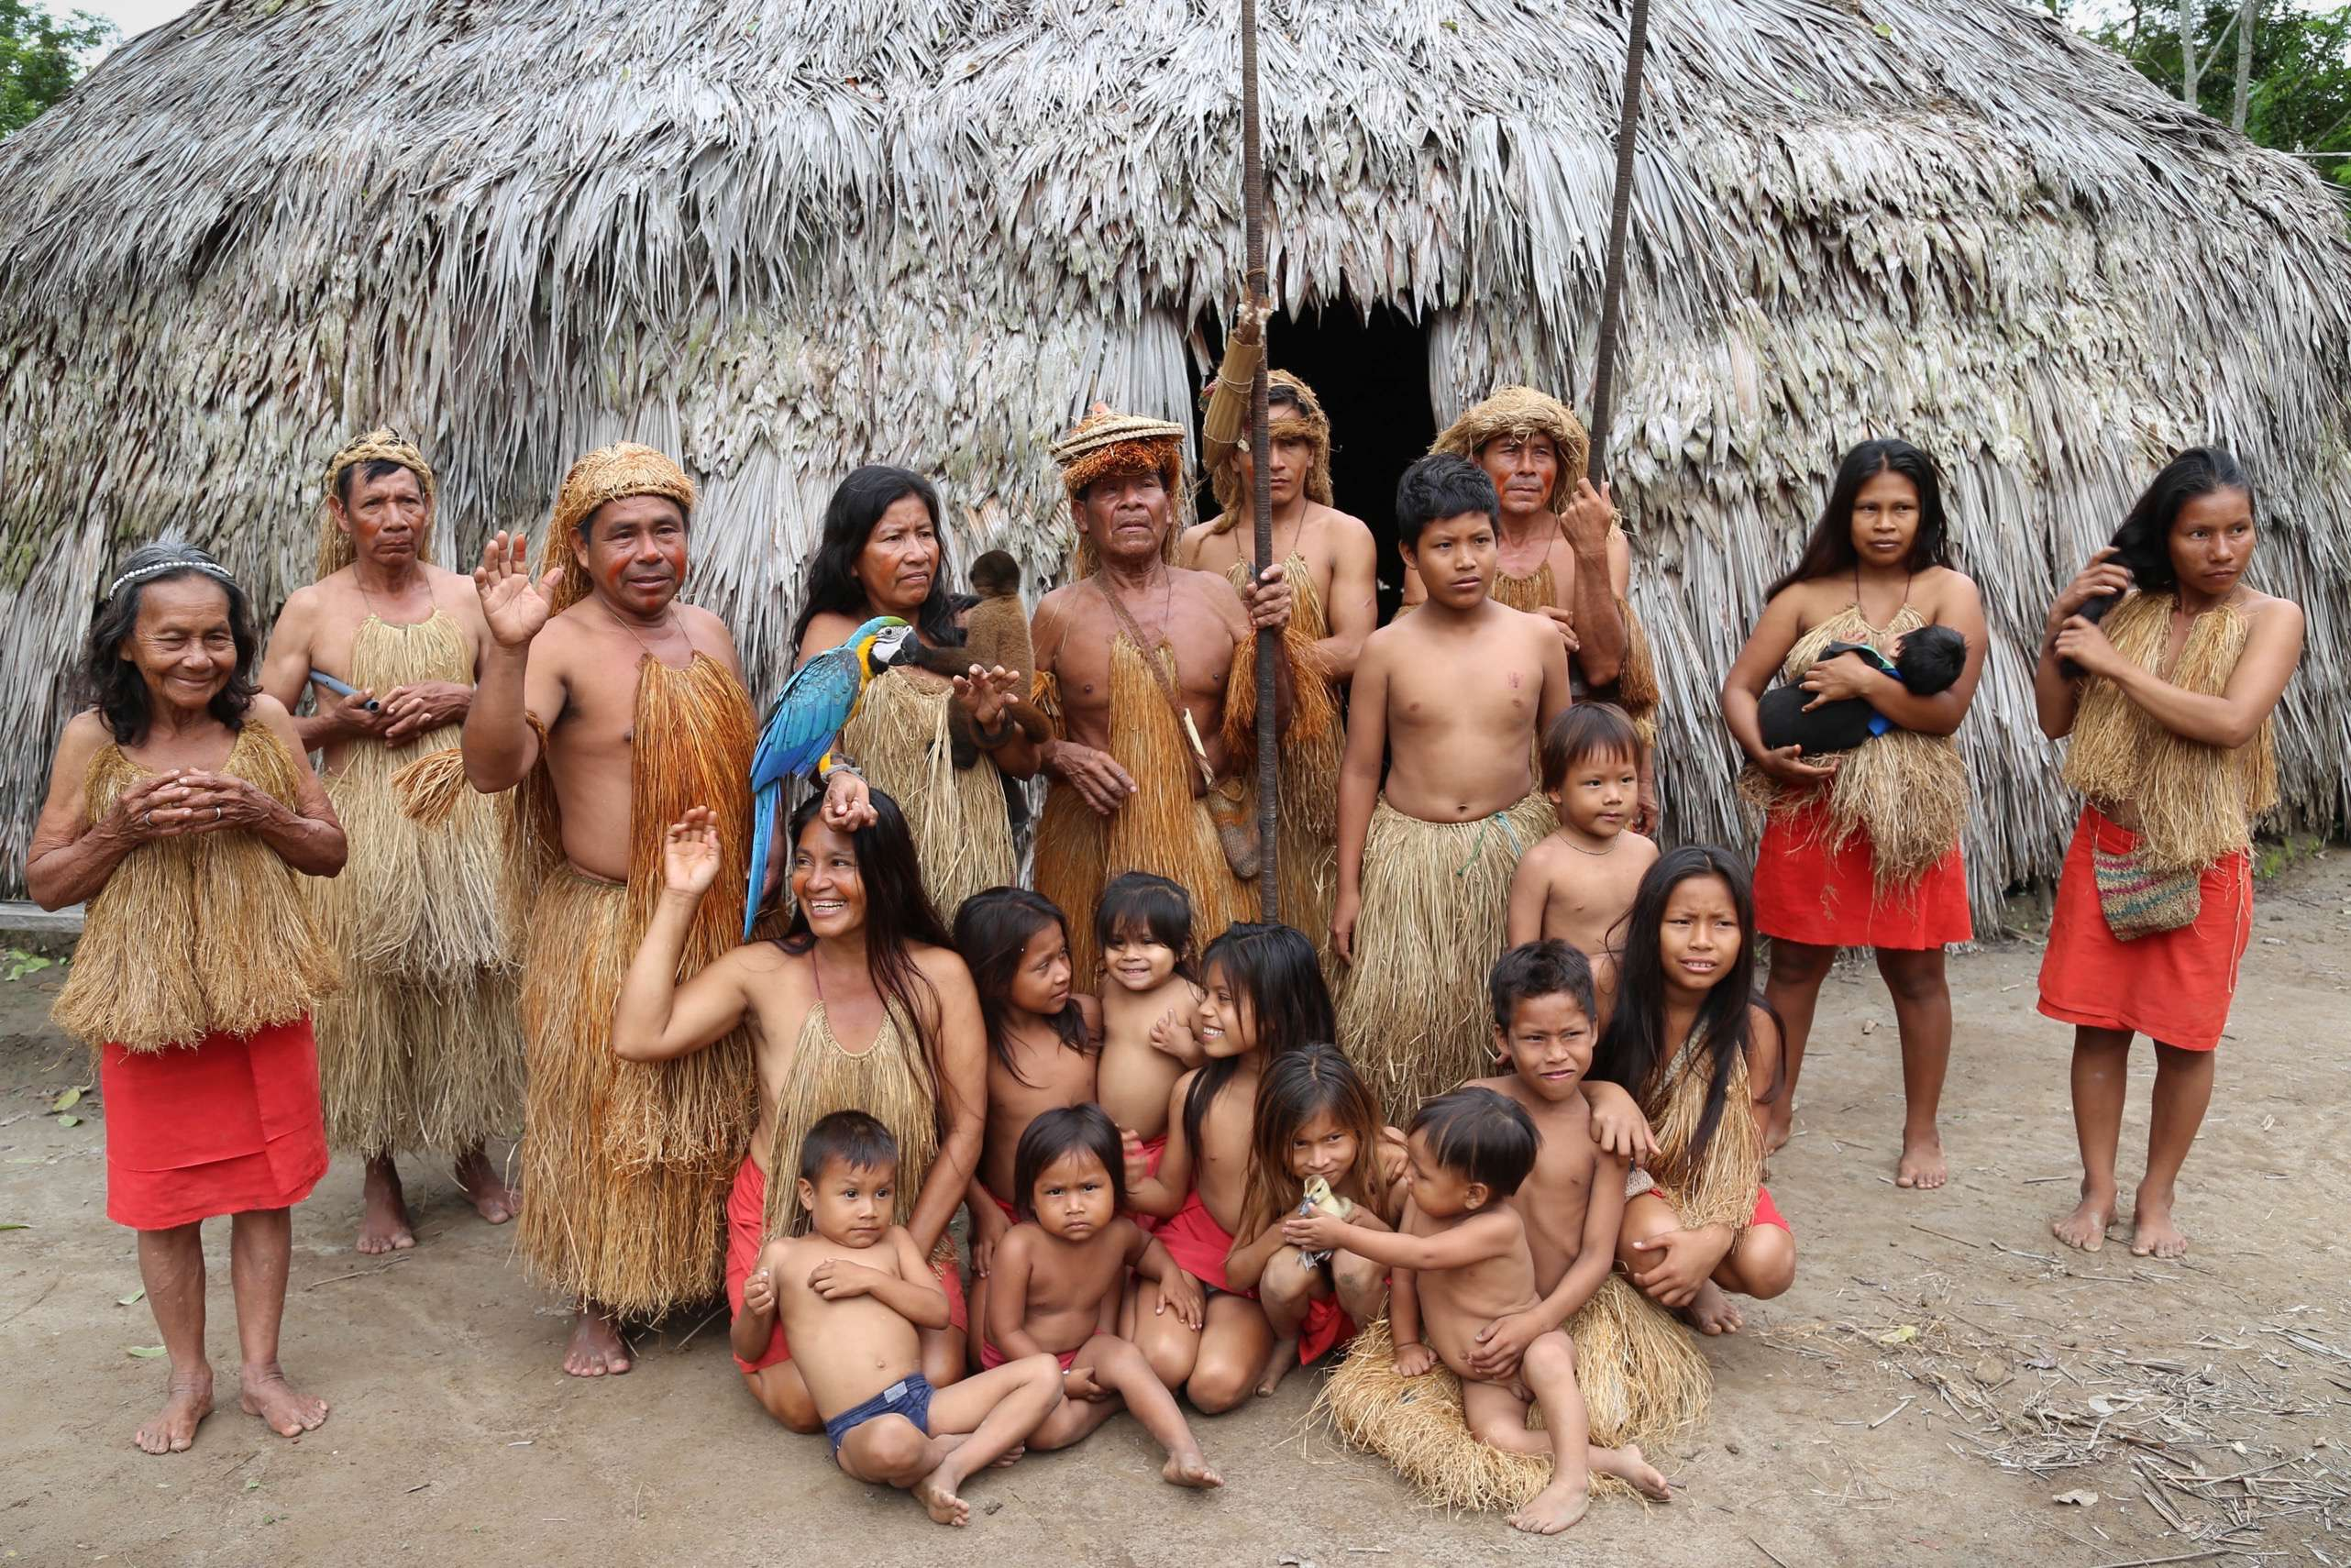 The Yagua live in small groups from two to 30 families. Here they gather next to their main hut for a group portrait.